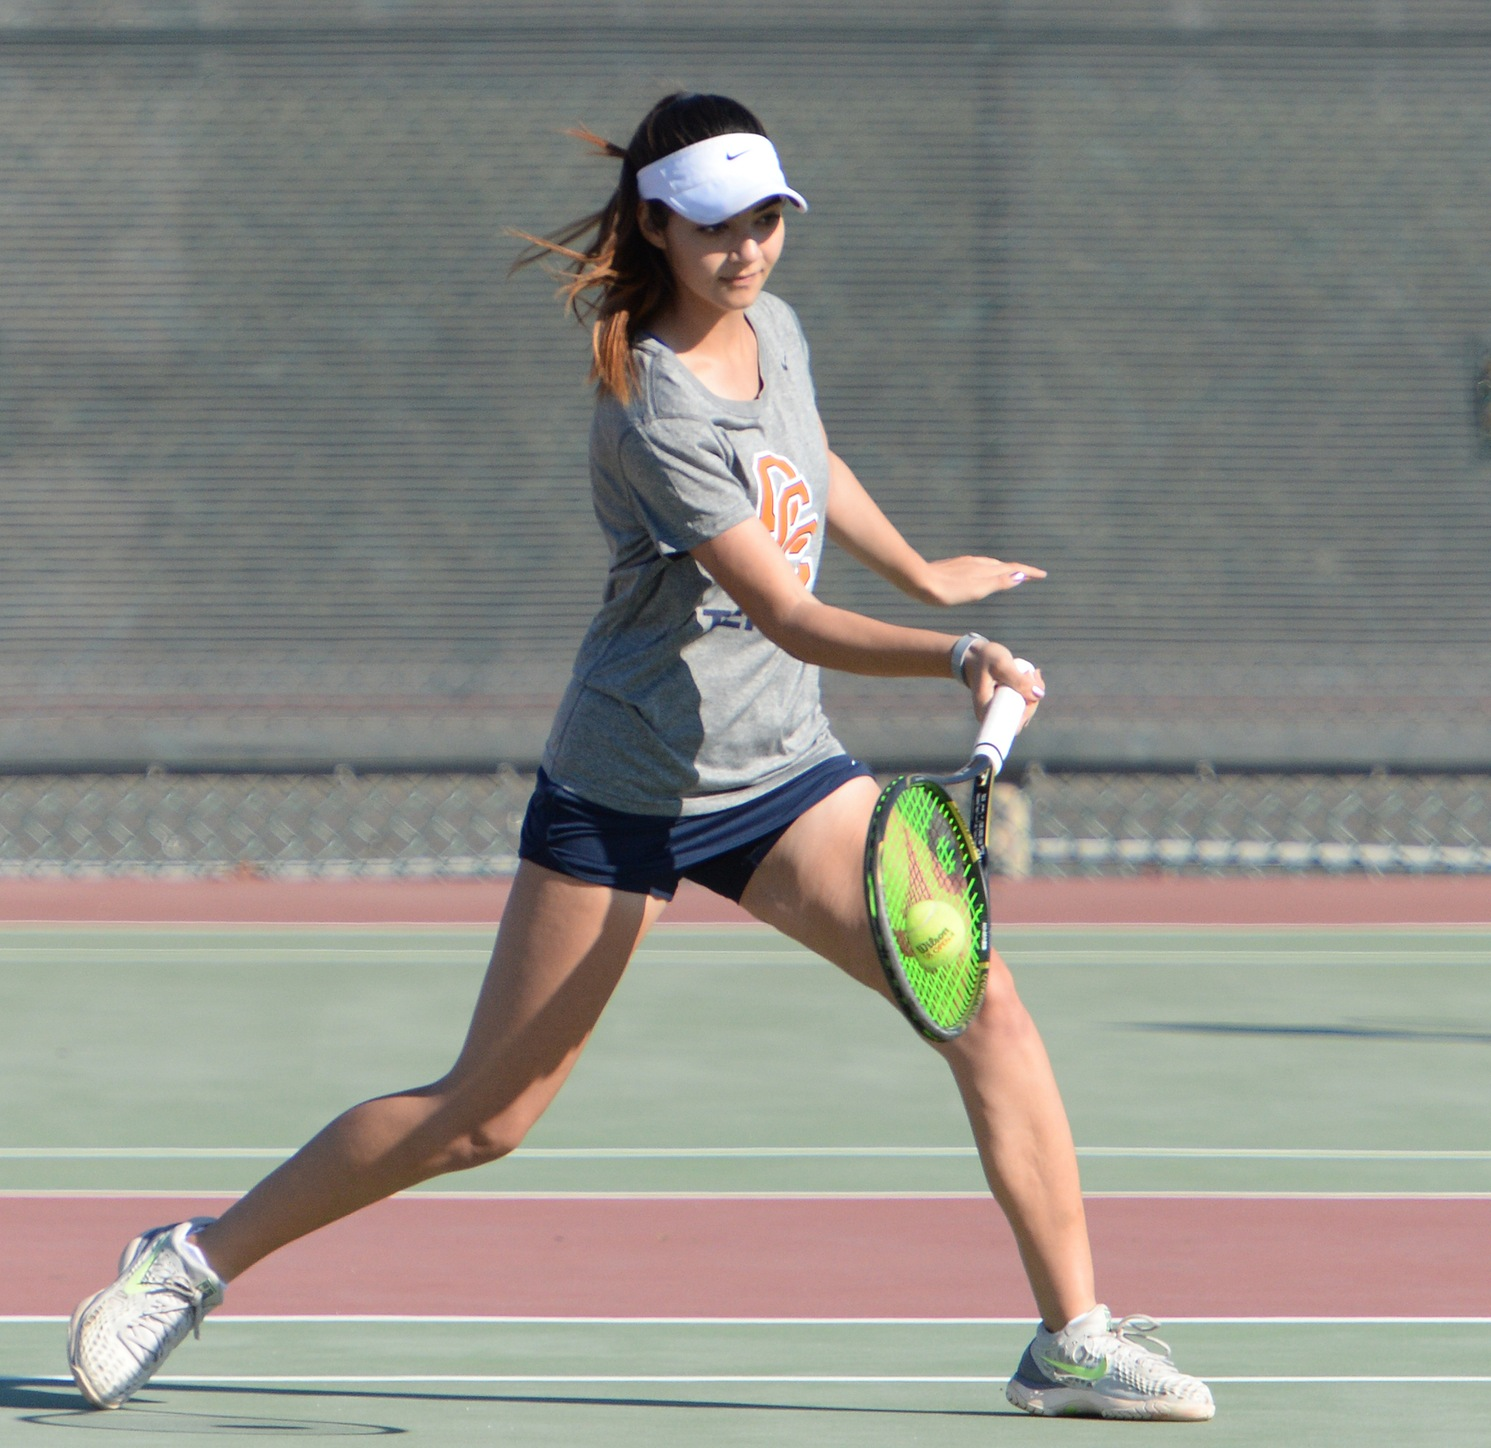 Pirates remain unbeaten with 8-1 win over Fullerton